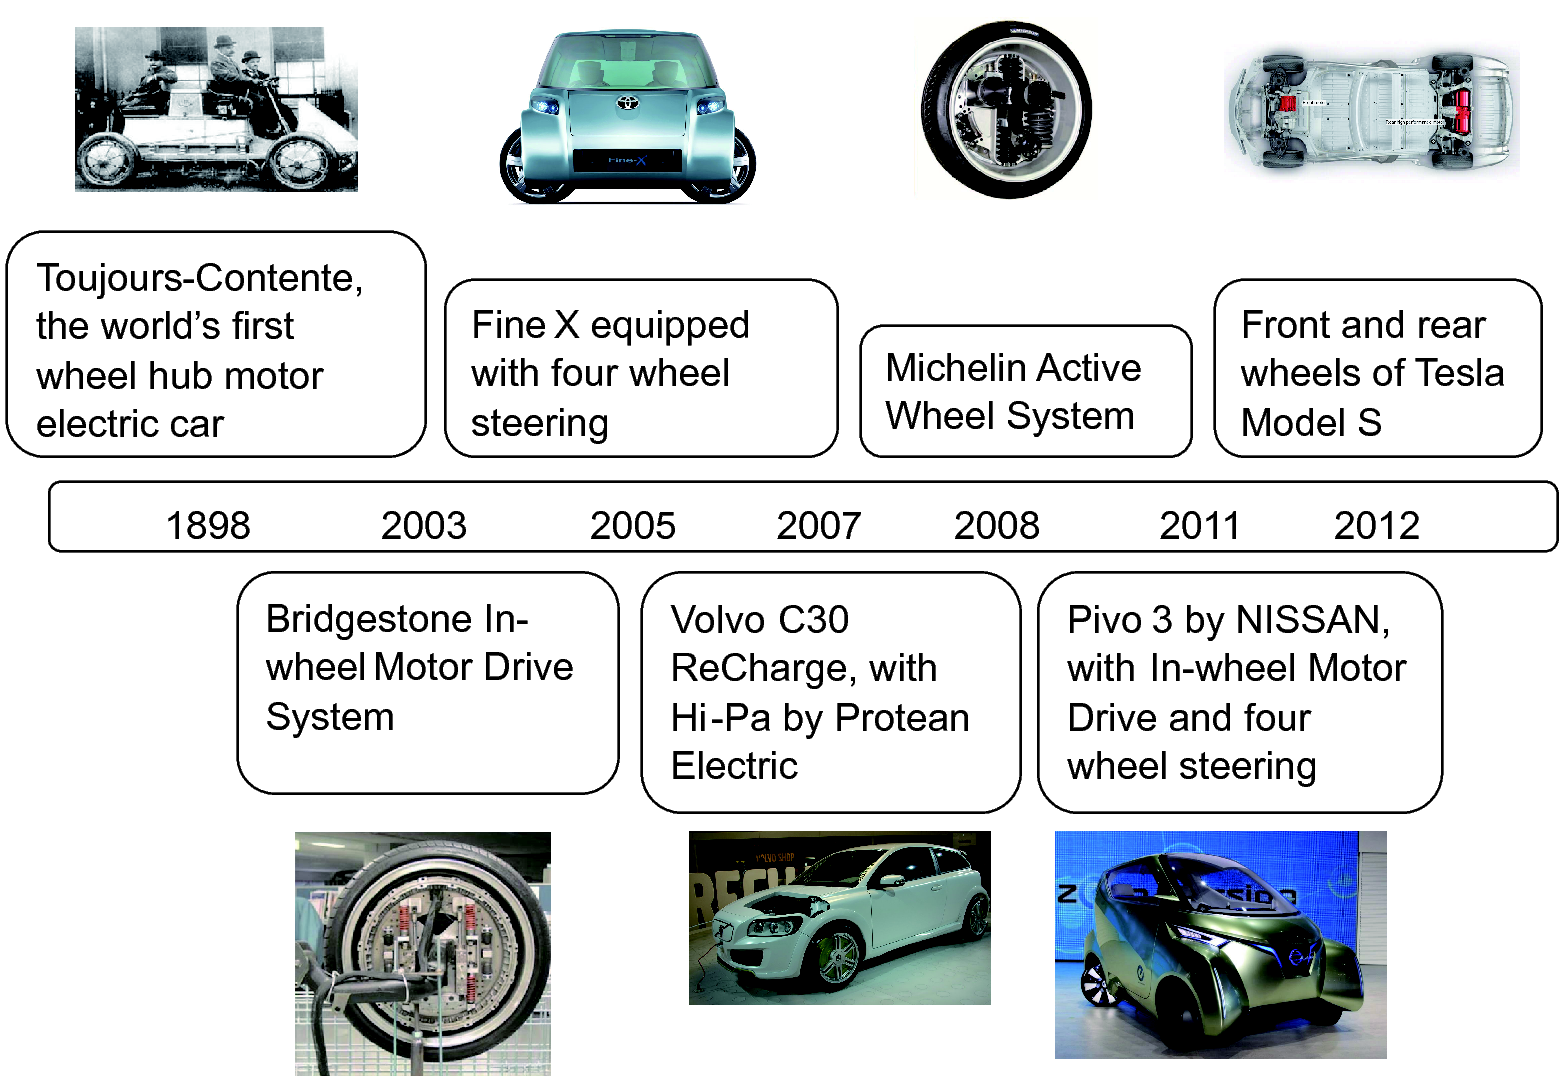 Intelligent and connected vehicles: Current status and <sc